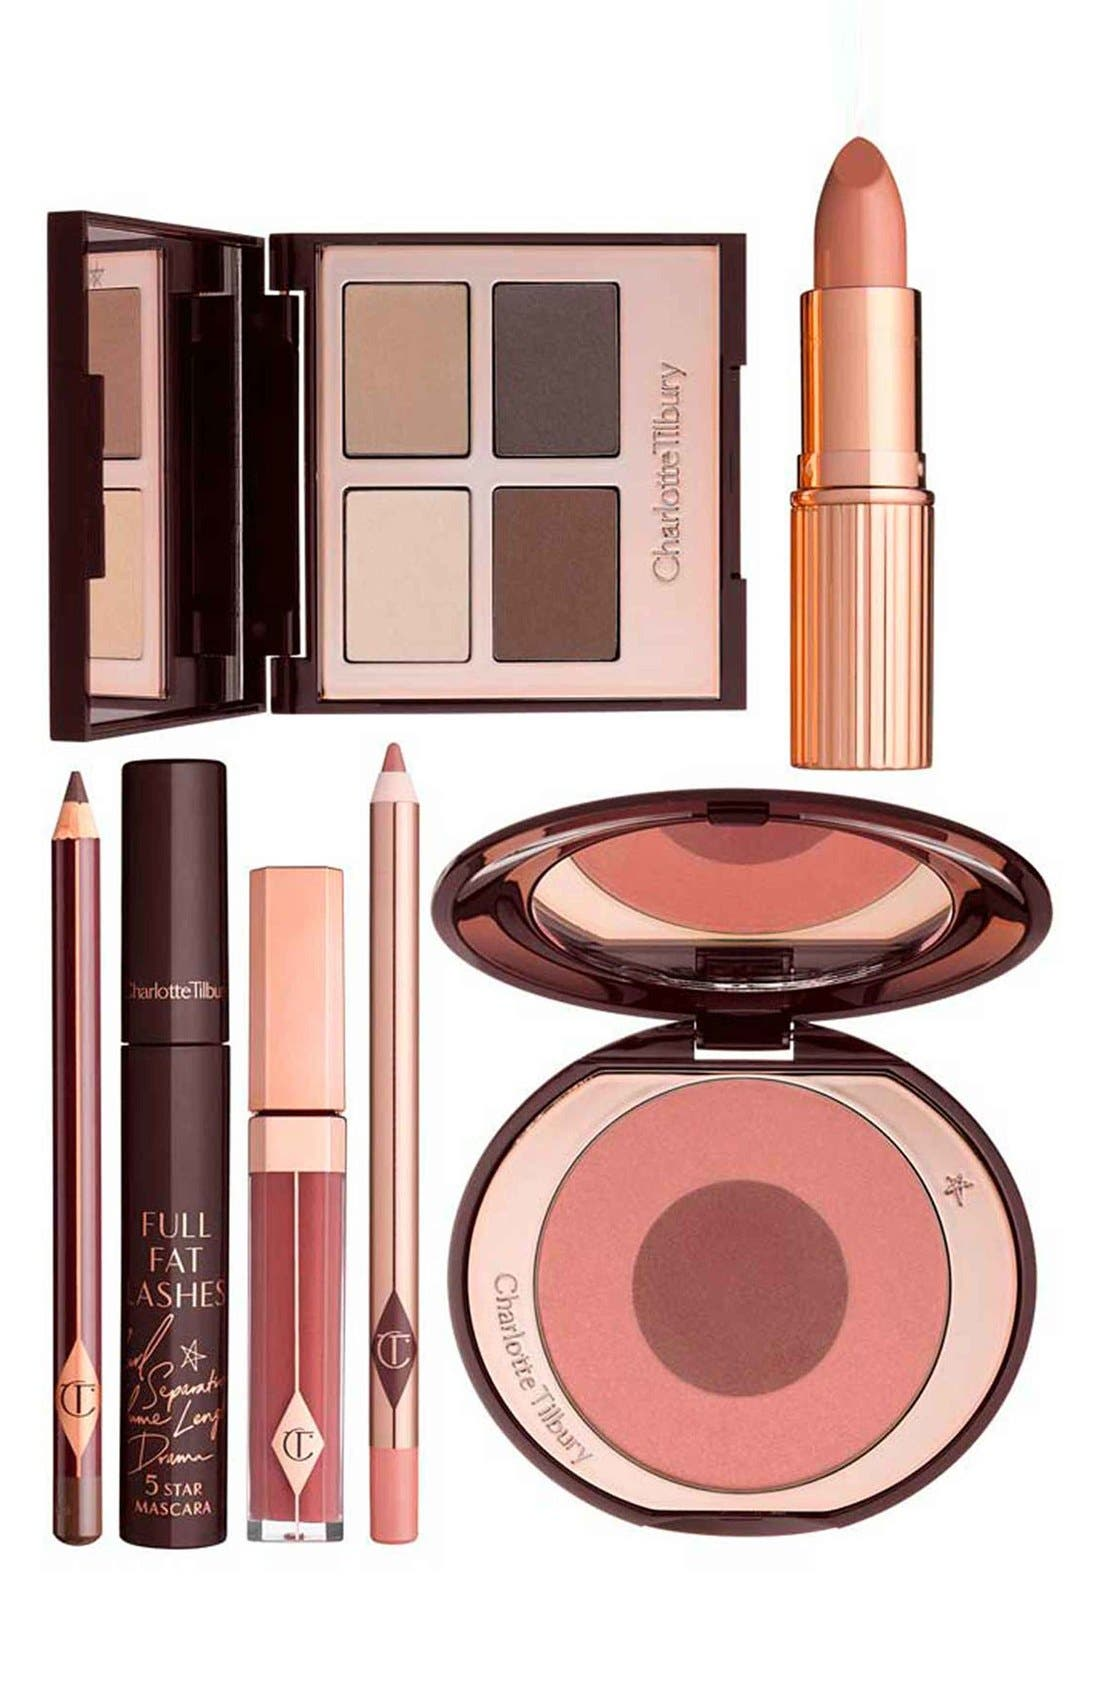 Charlotte Tilbury 'The Sophisticate' Set ($239 Value)